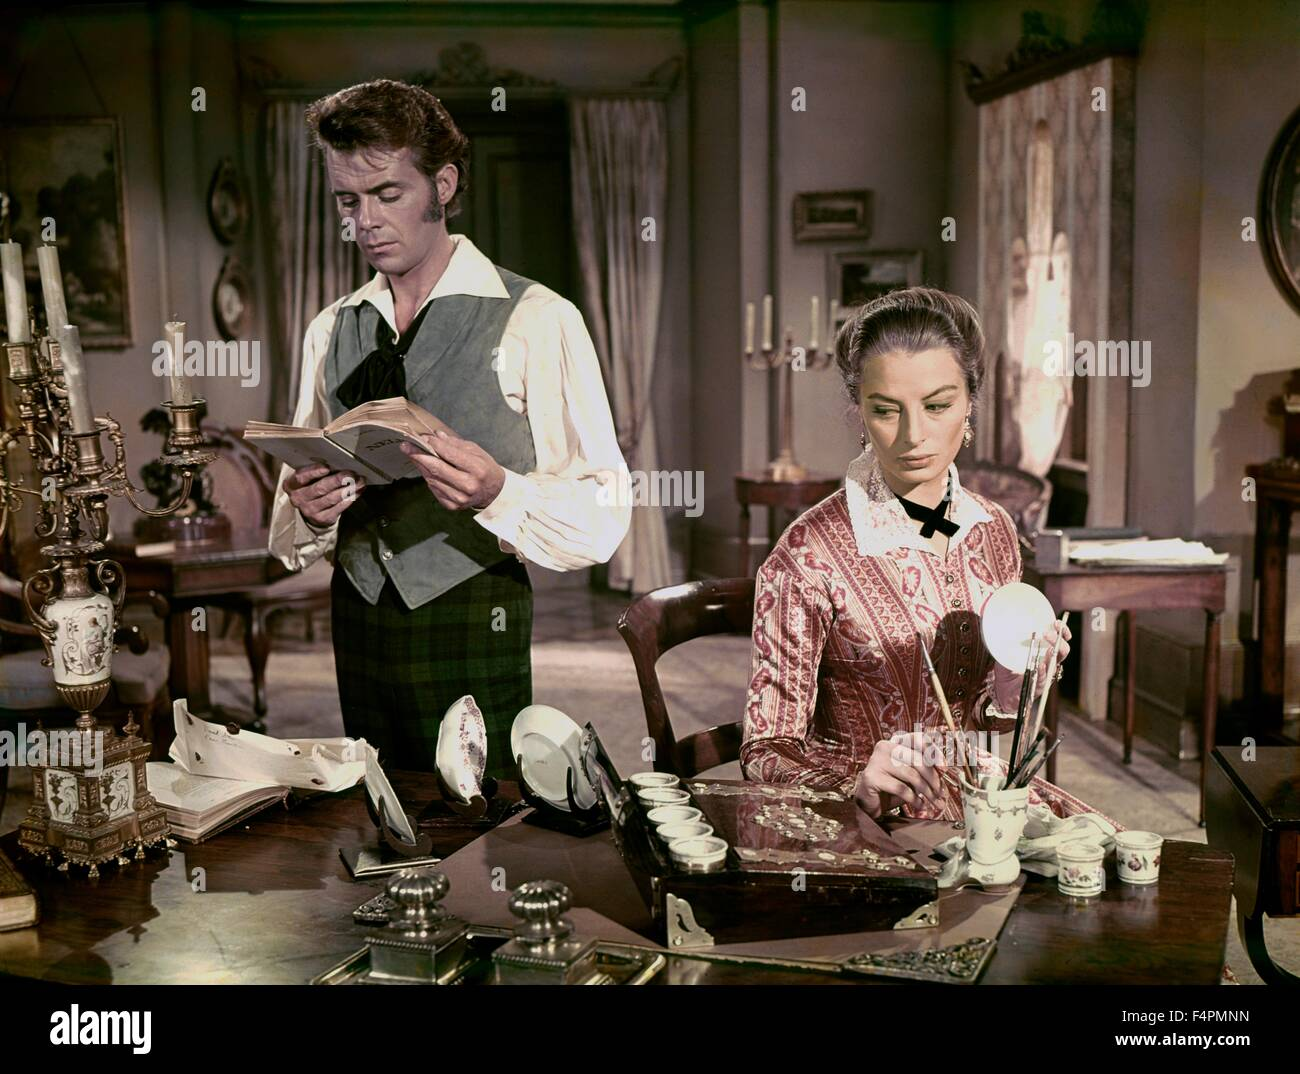 Dirk Bogarde and Capucine / Song Without End / 1960 directed by Charles Vidor [Columbia Pictures] - Stock Image